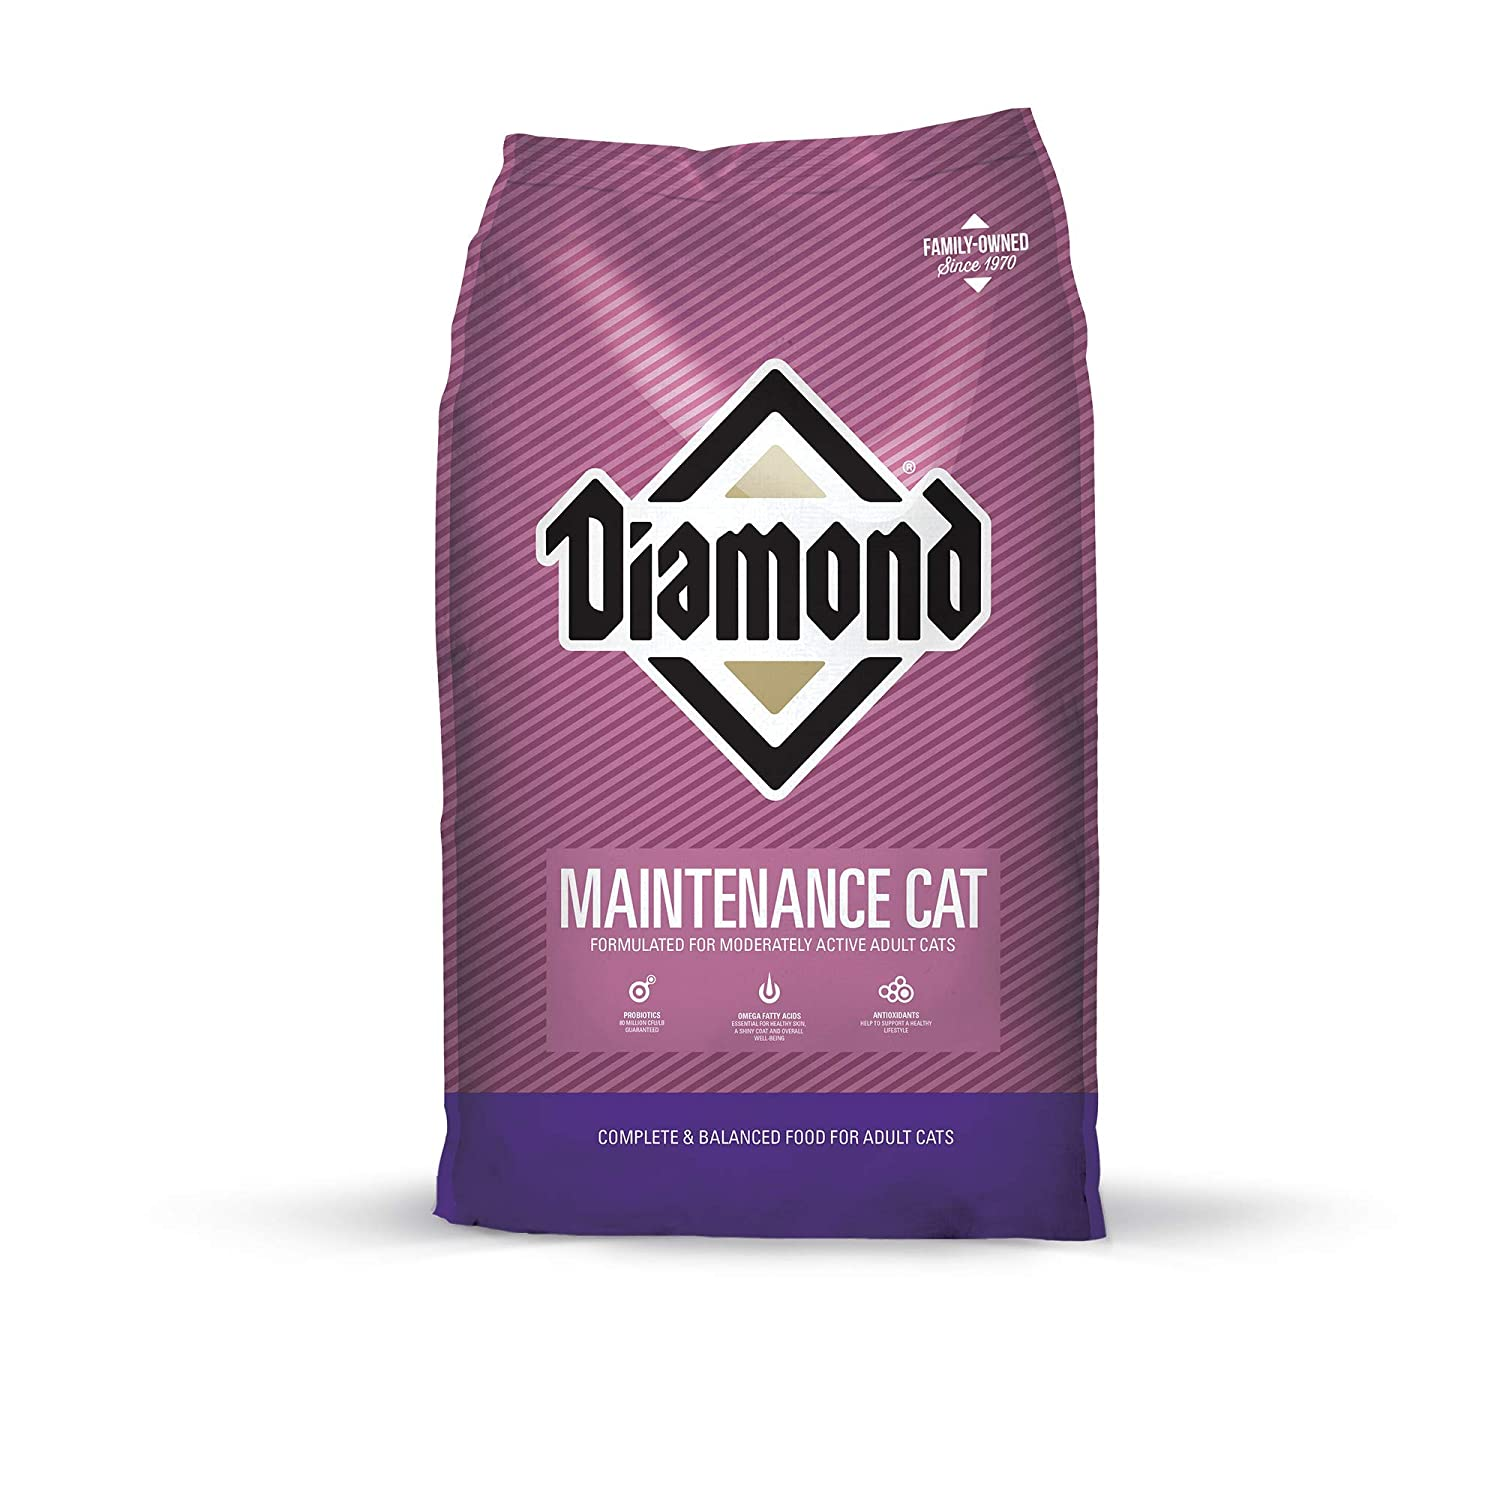 Diamond Premium Recipe Maintenance Complete and Balanced Dry Cat Food for Moderately